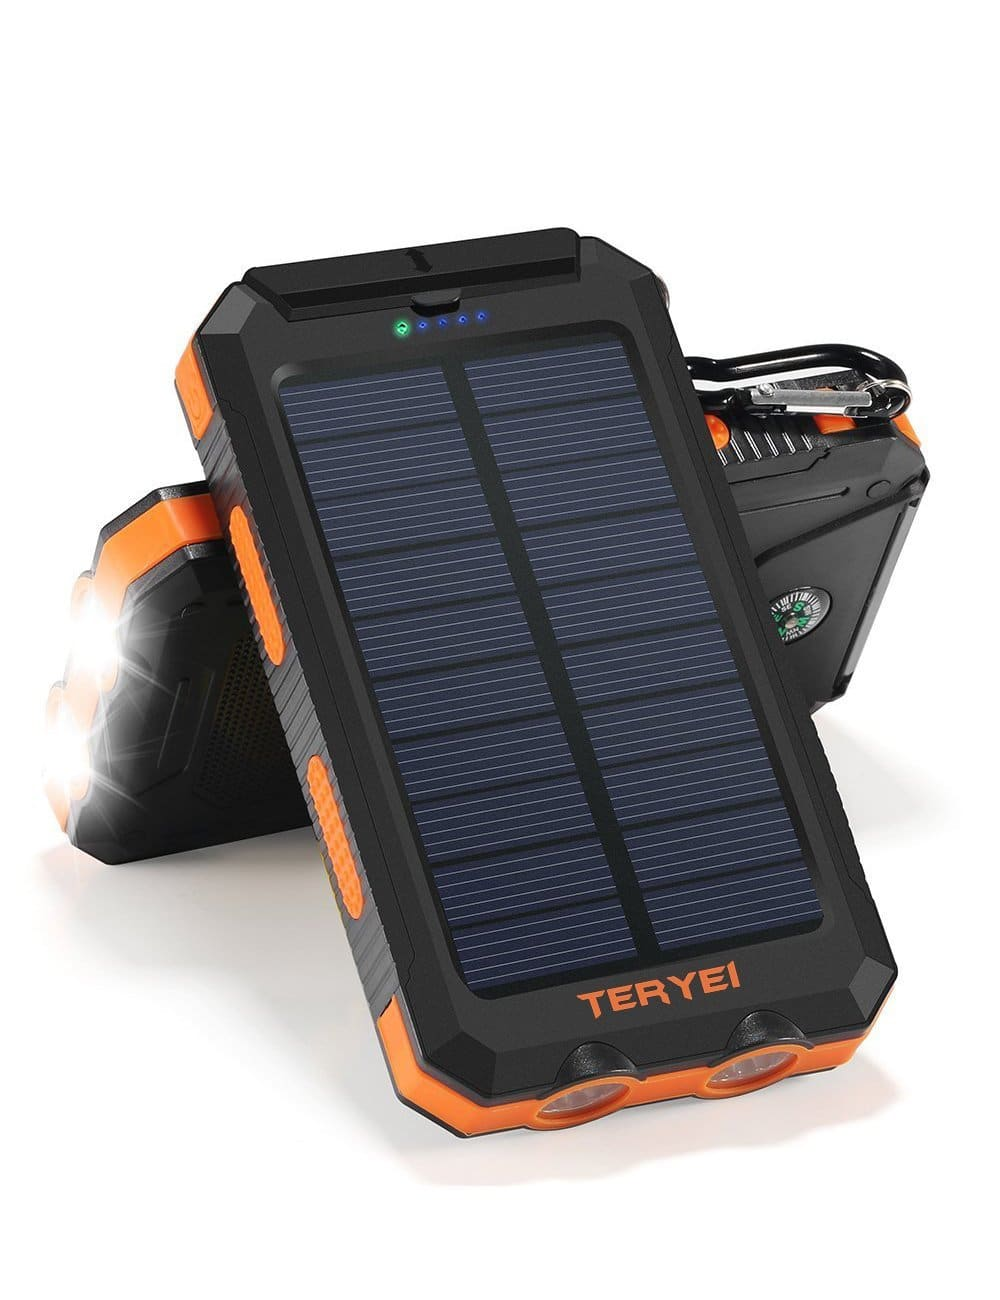 Top 10 Best Solar Power Bank Charger in 2018